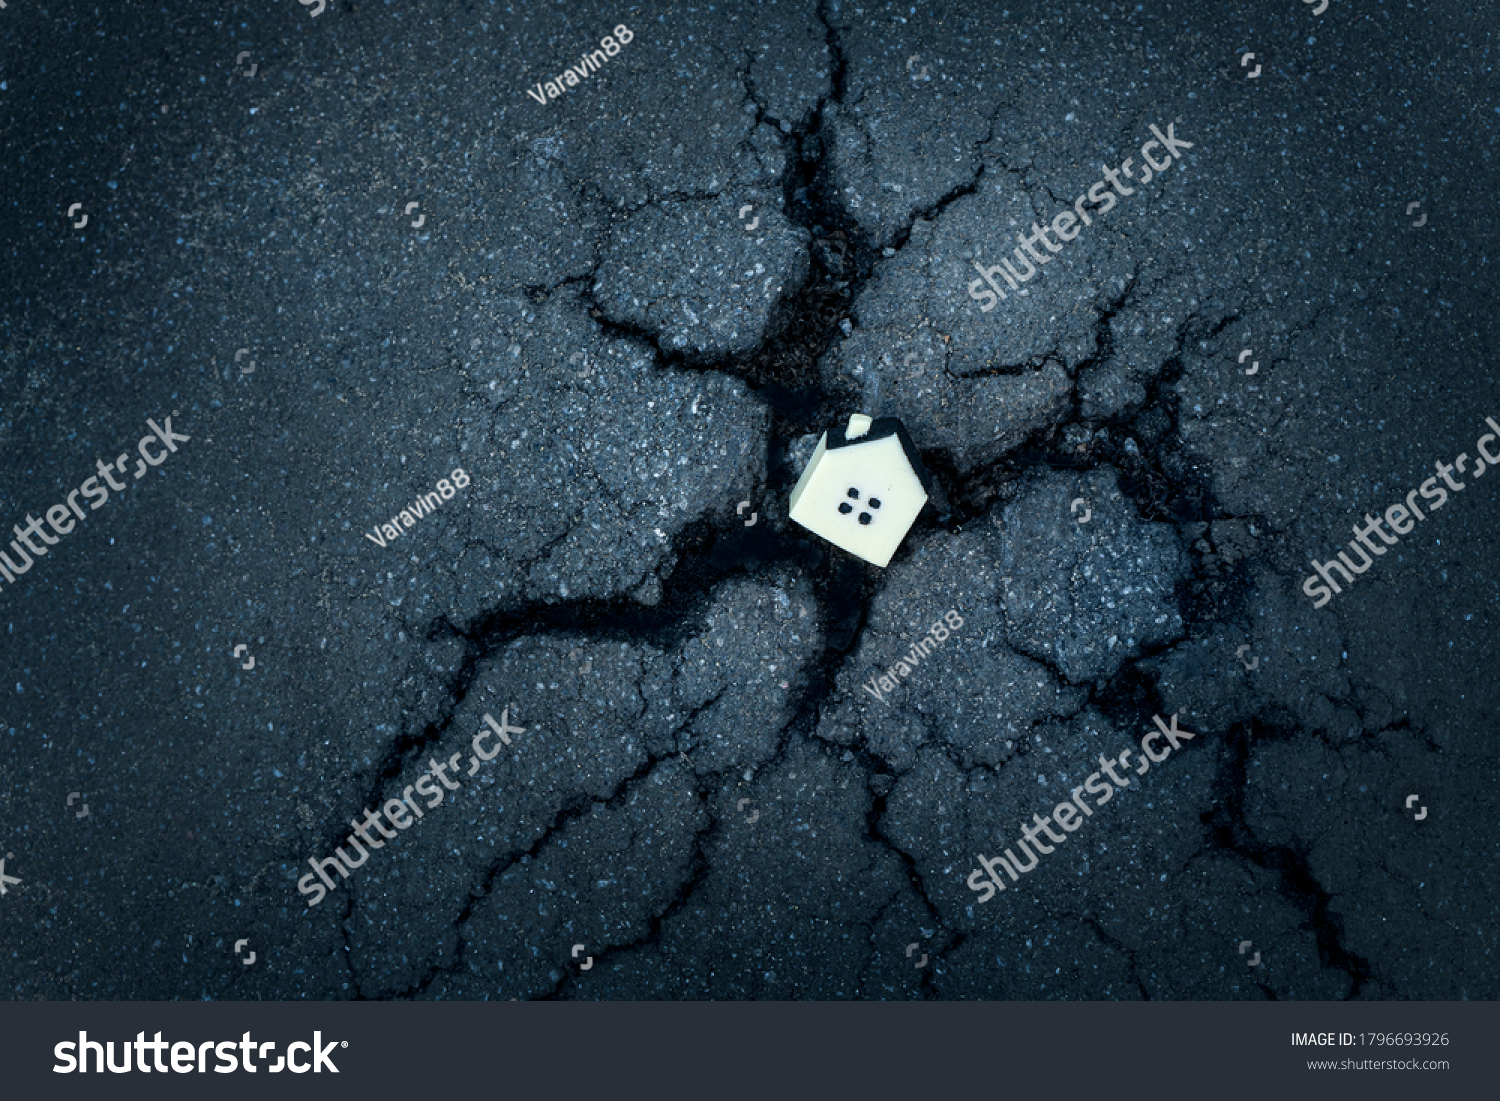 Destruction of residential buildings concept with the little toy house in a cracked asphalt hole. #1796693926